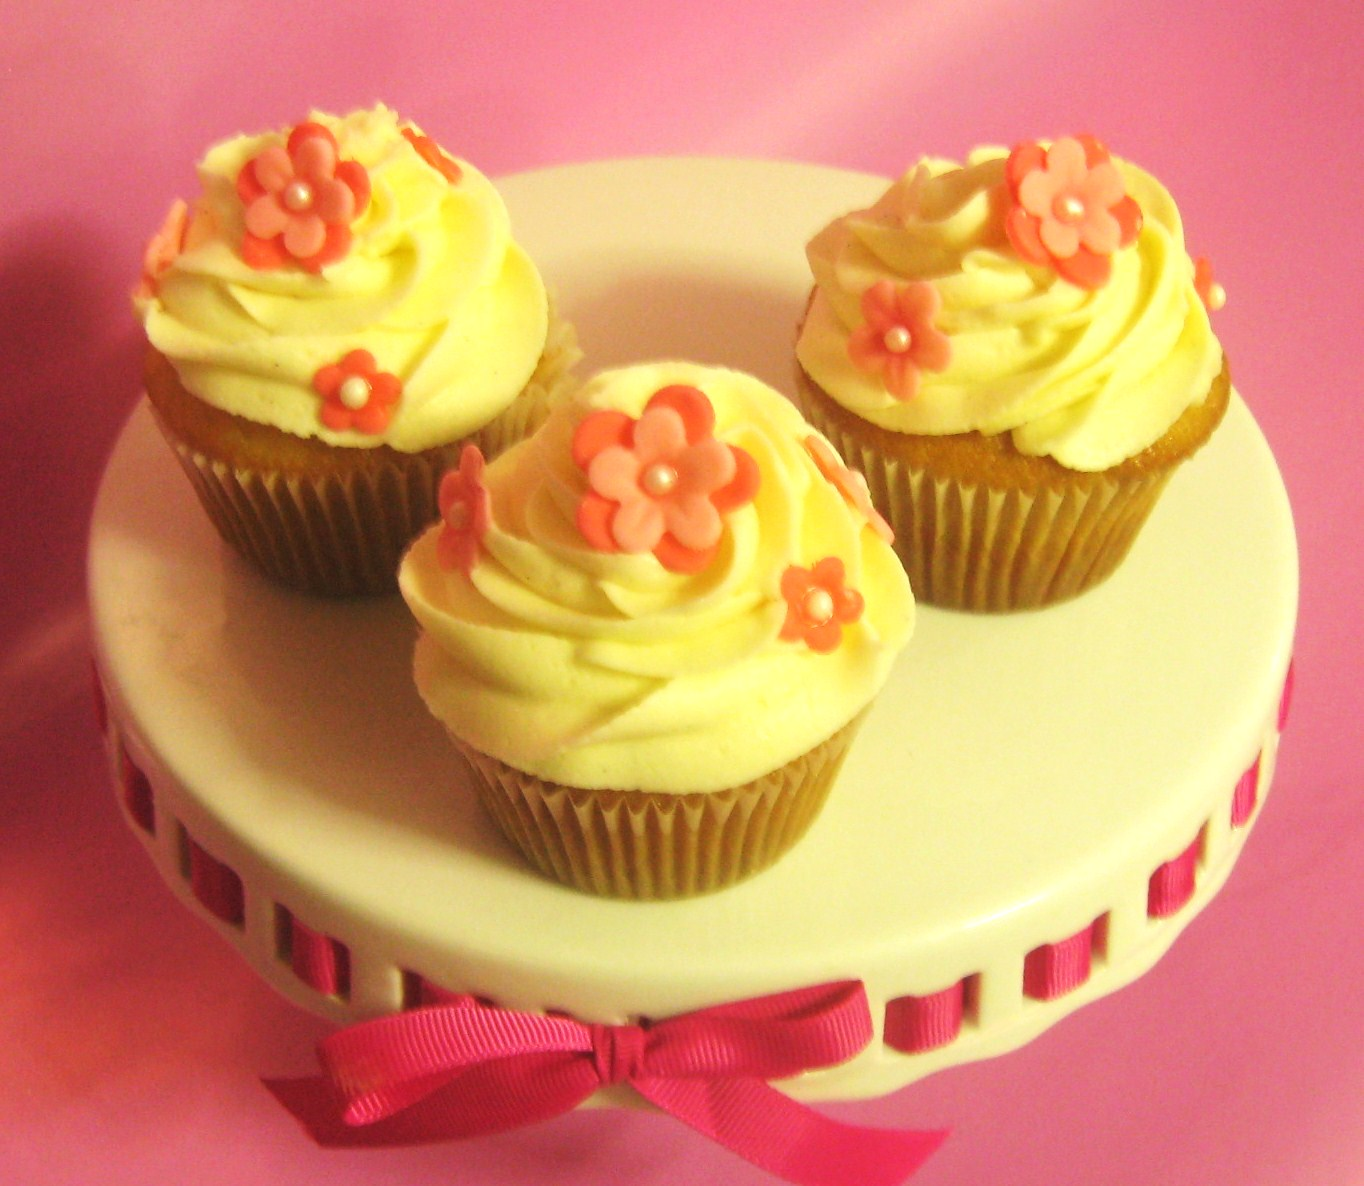 How To Decorate Cupcakes Professionally – Lesson 1